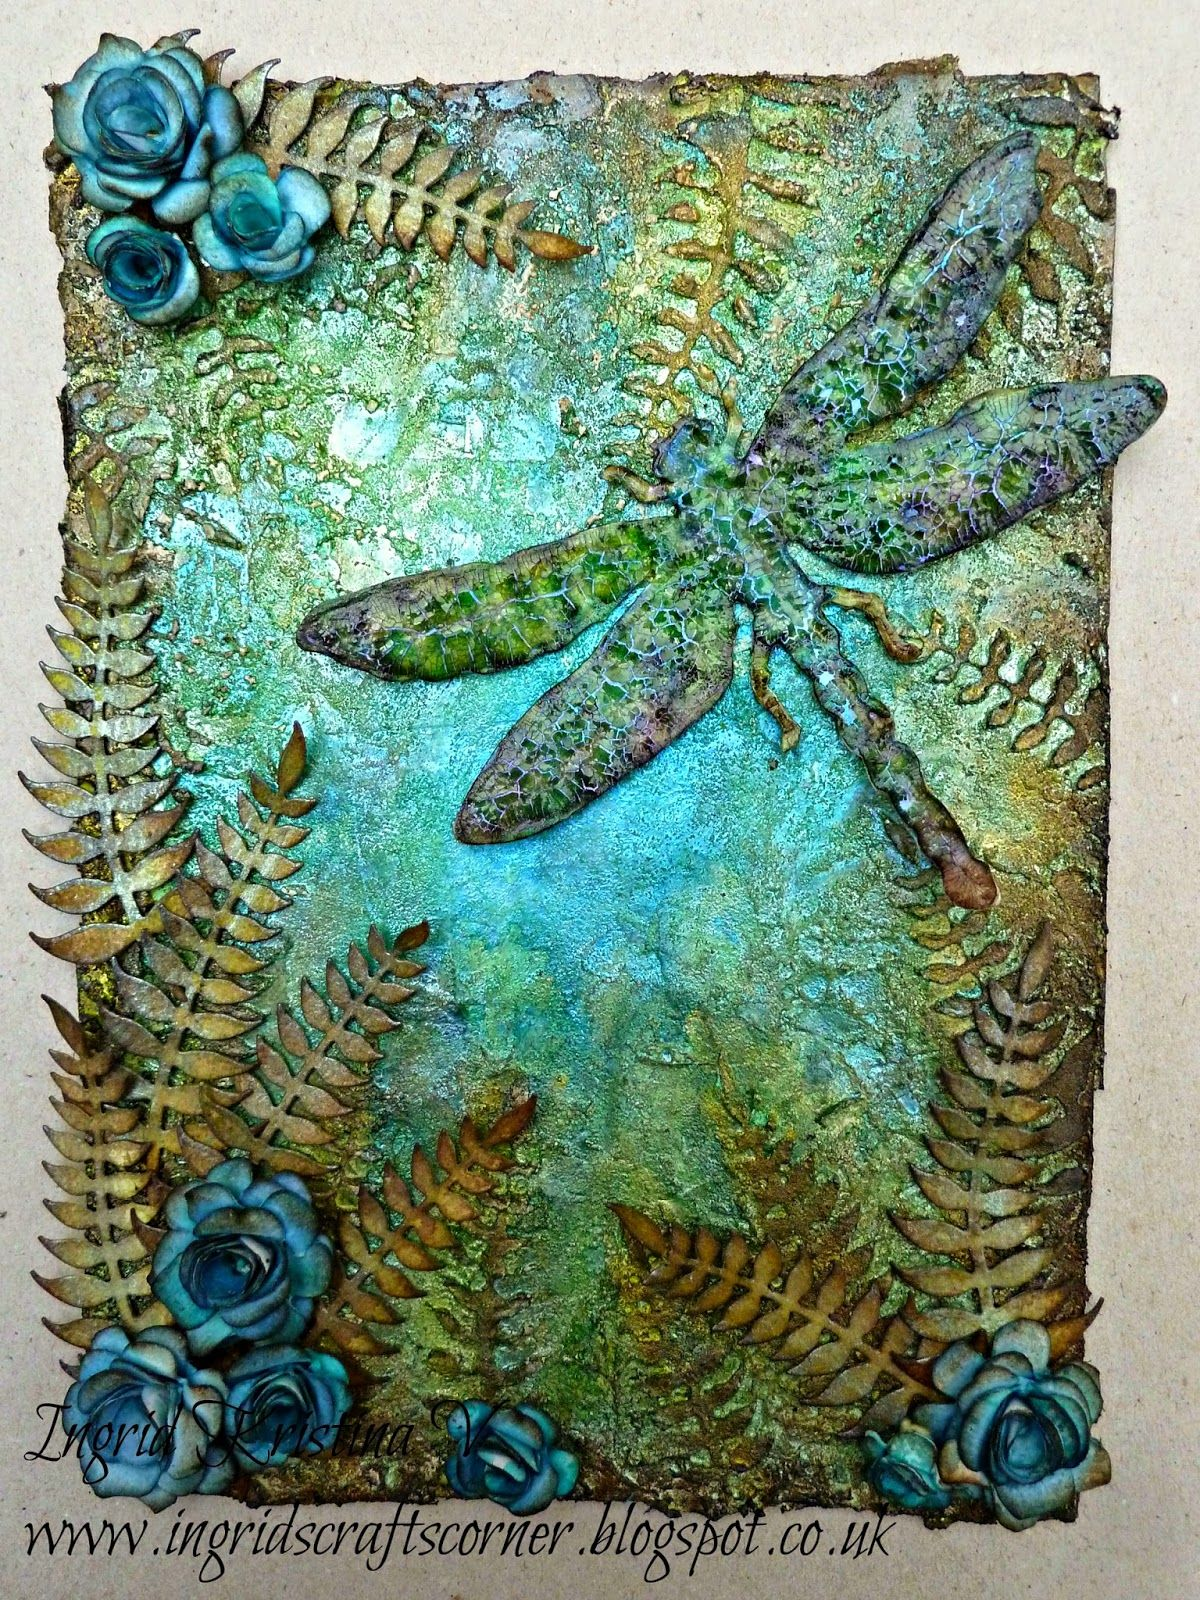 INGRID's CRAFTS CORNER: My Dragonfly art CASEd by Janine Tim Holtz, Ranger, Sizzix and Stamper's Anonymous products; Oct 2014; Oct 2014